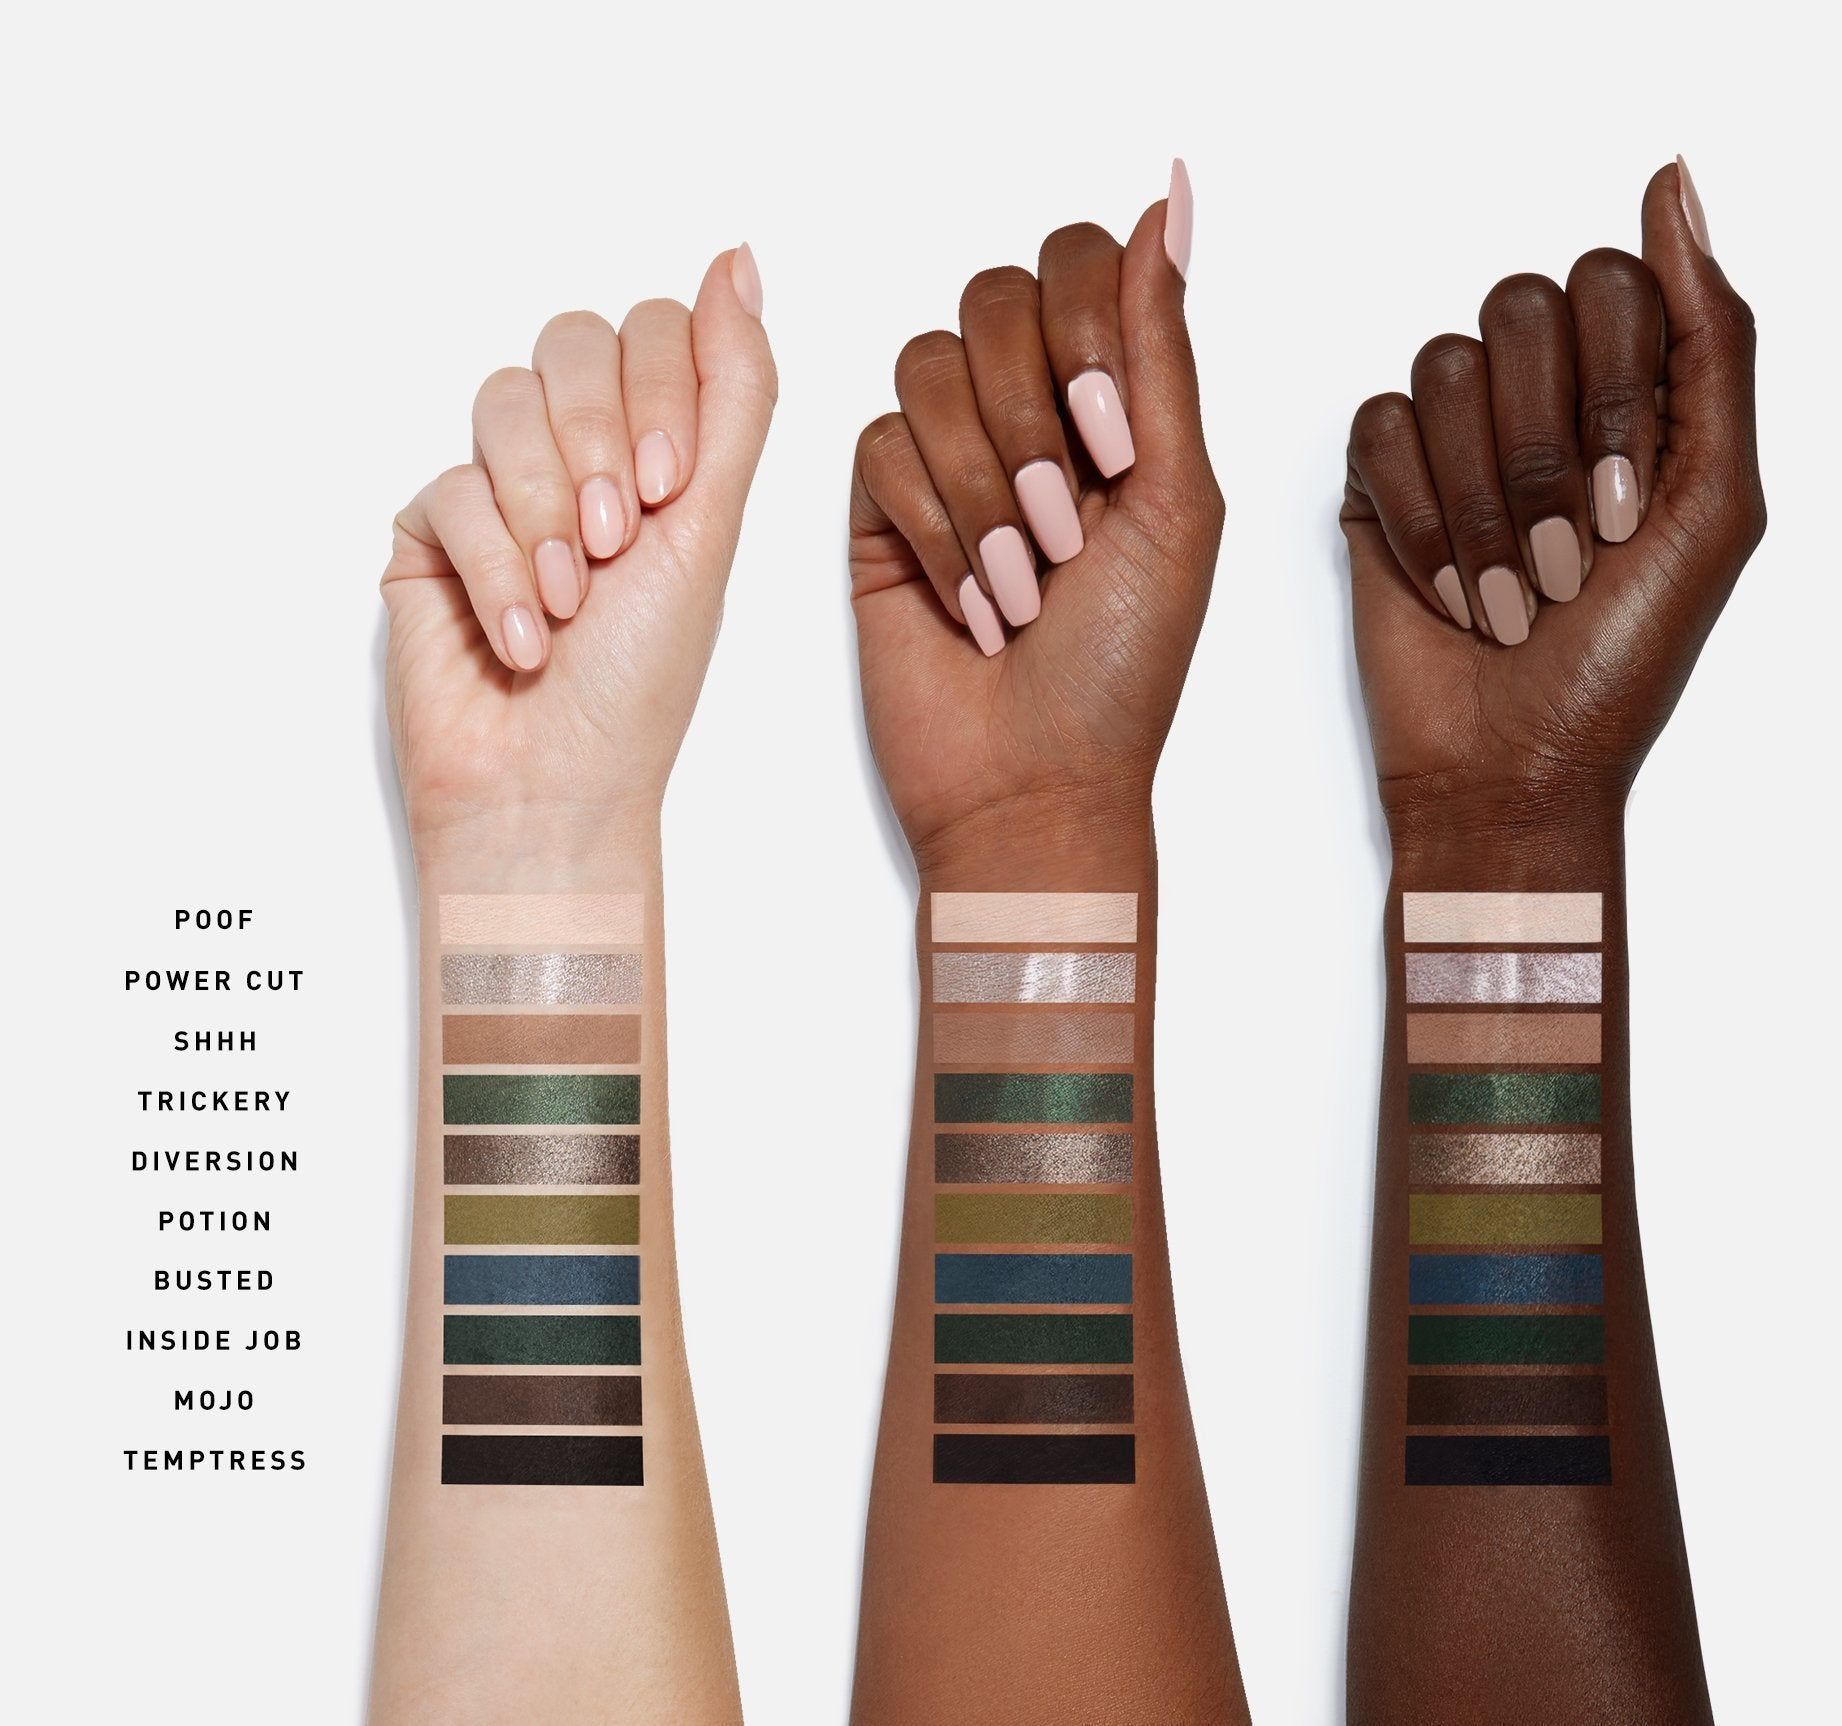 DARK MAGIC EYESHADOW PALETTE ARM SWATCHES, view larger image